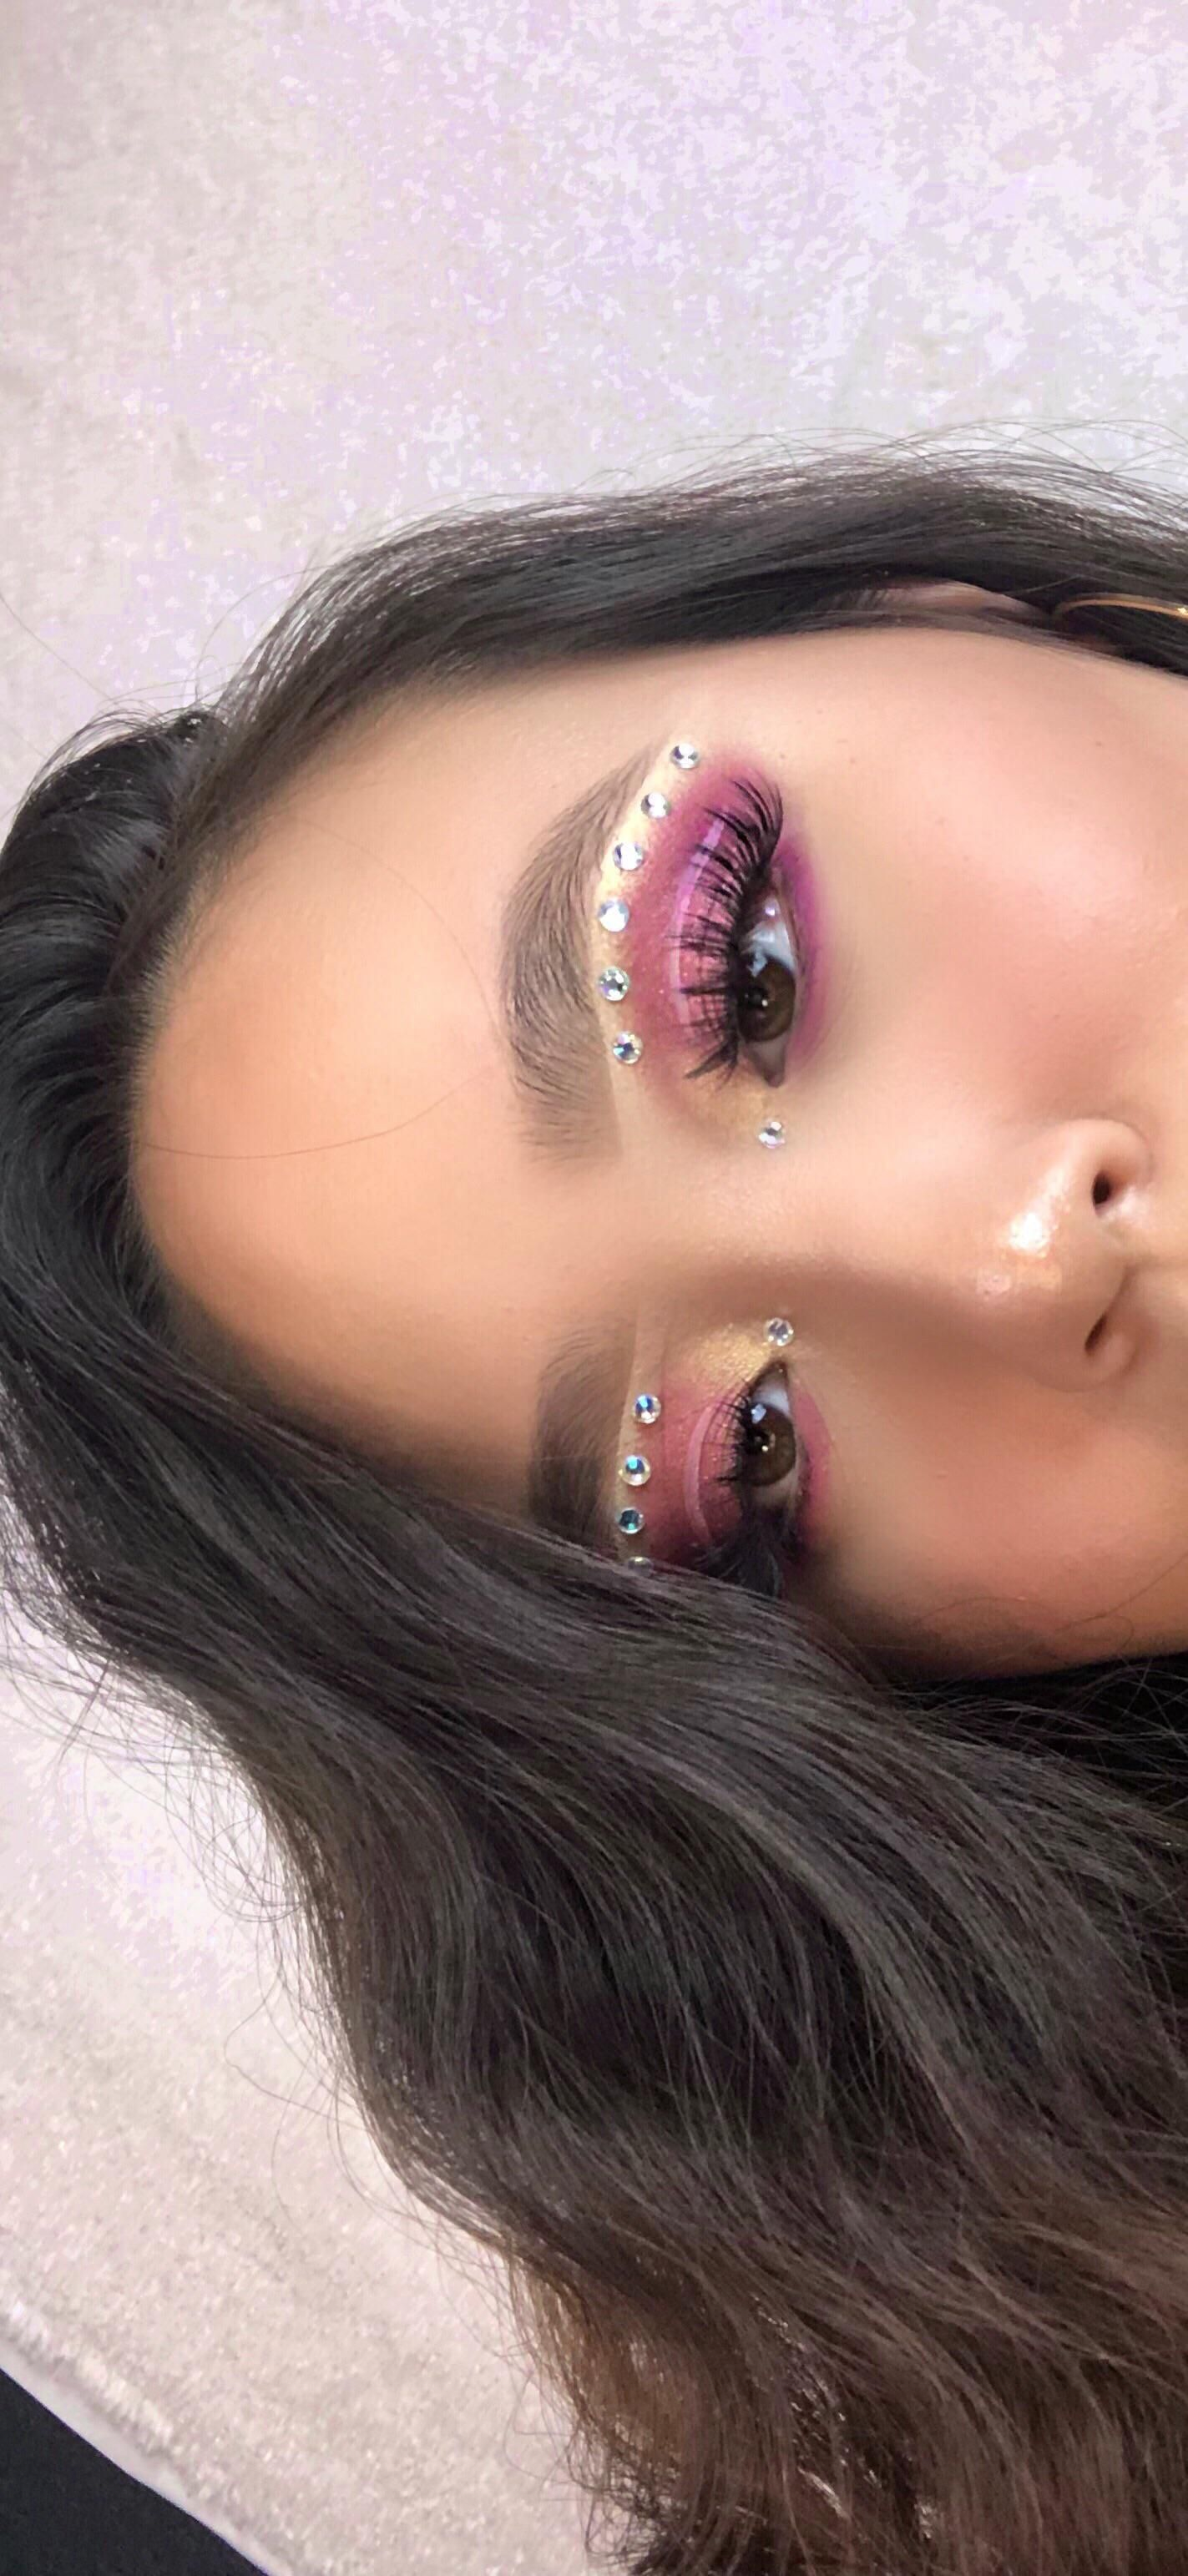 I was inspired by Maddy's makeup and filmed a video for this look